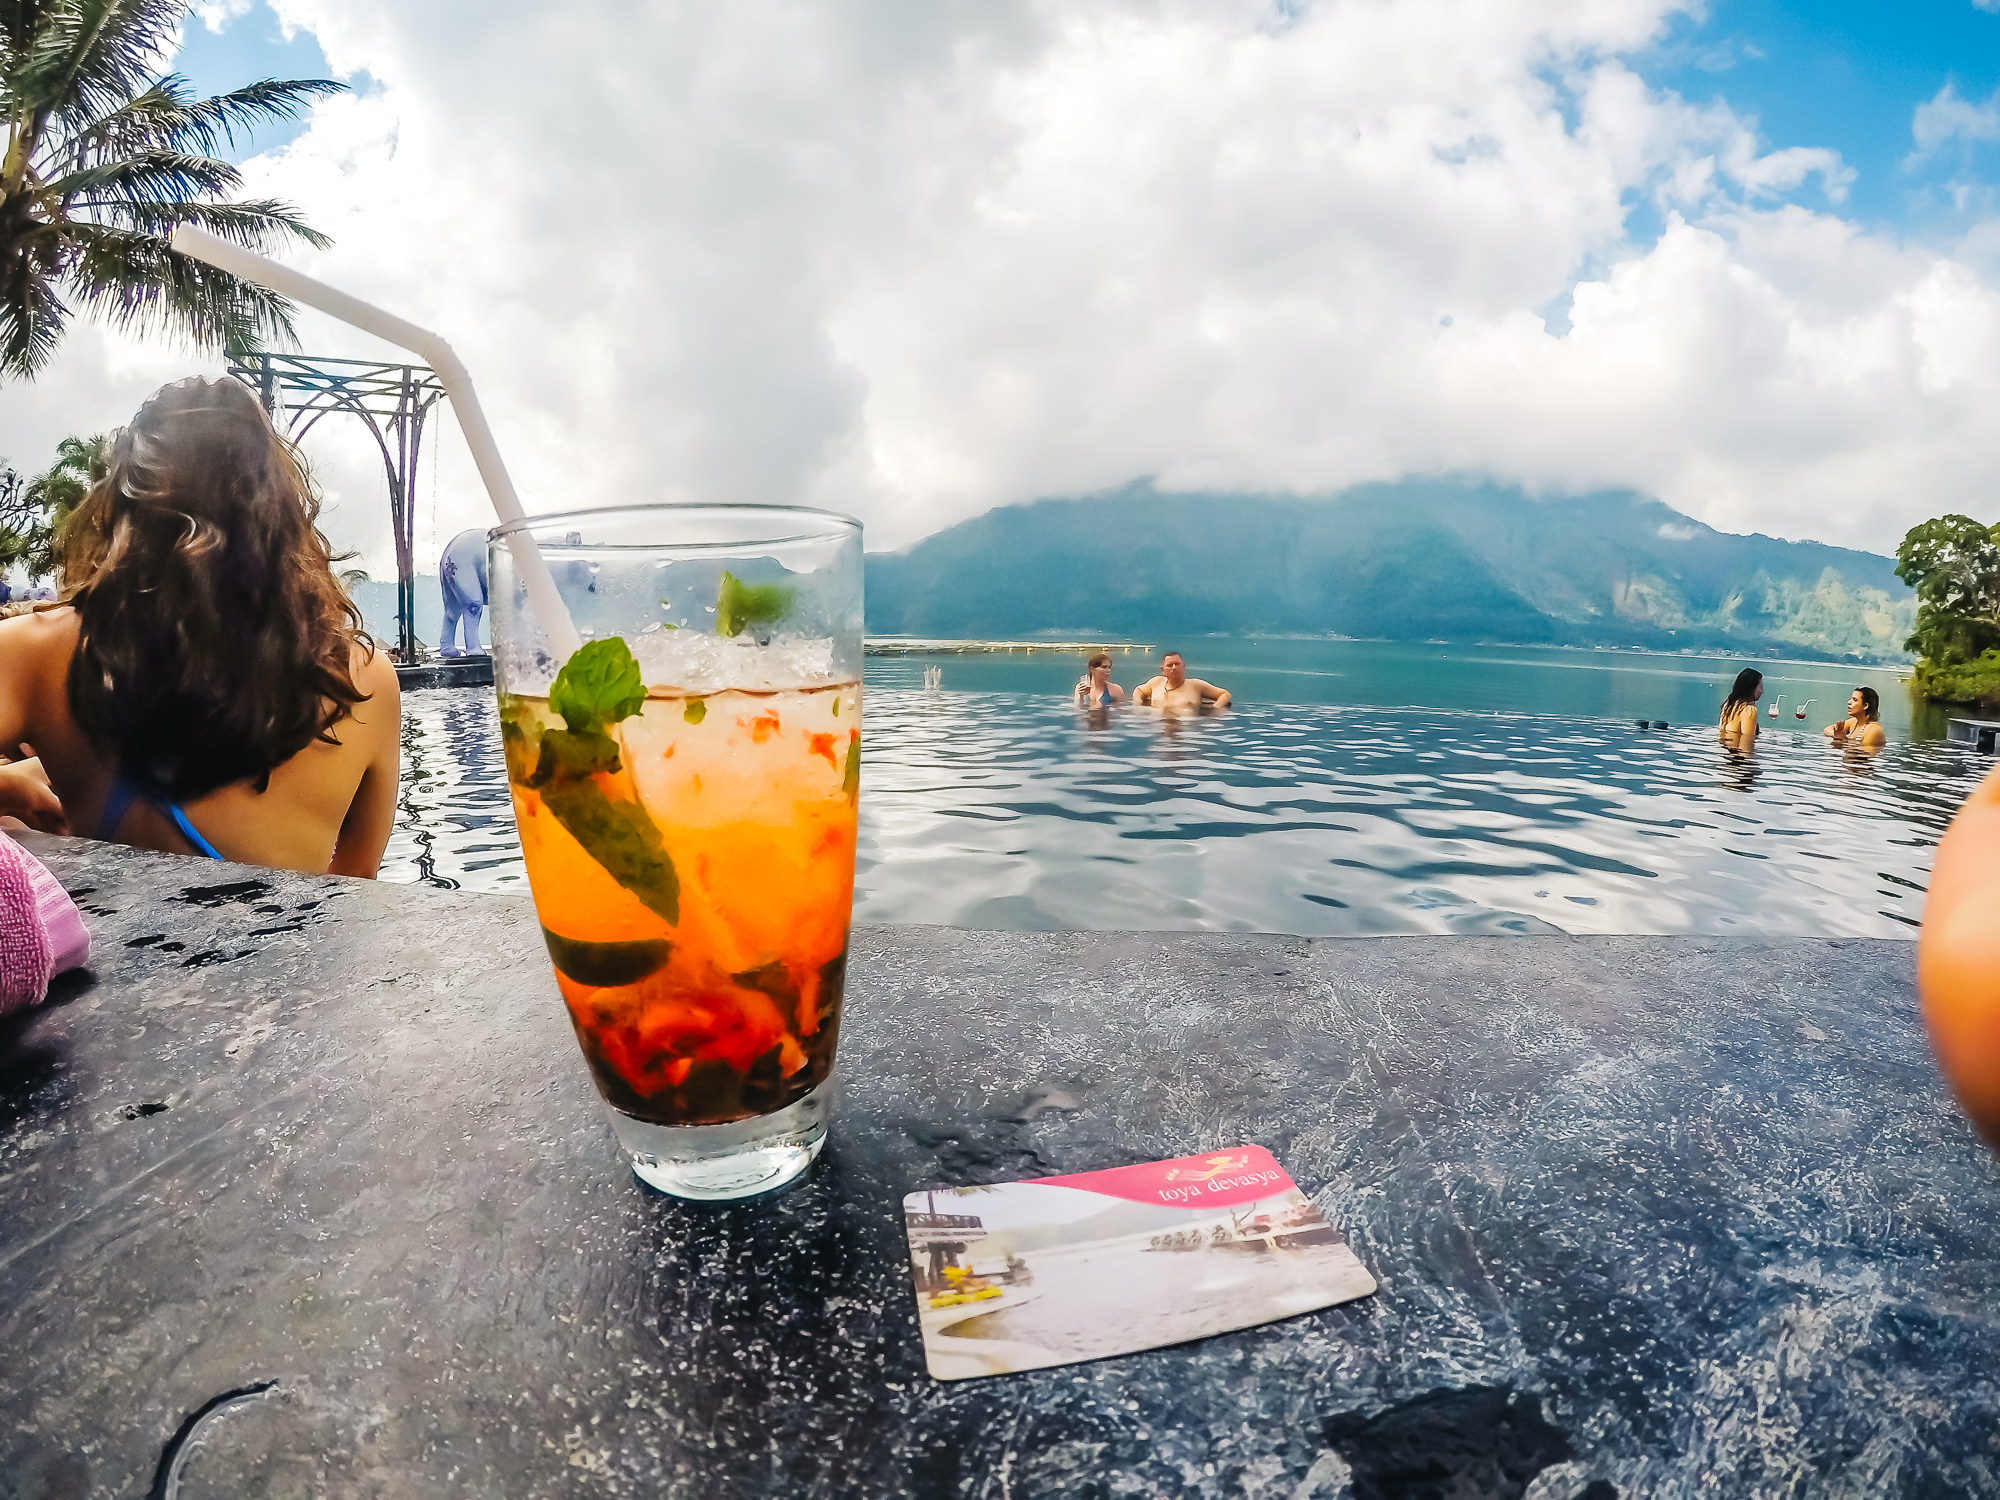 Expensive drinks at Batur Natural Hot Springs but very tasty strawberry mojito